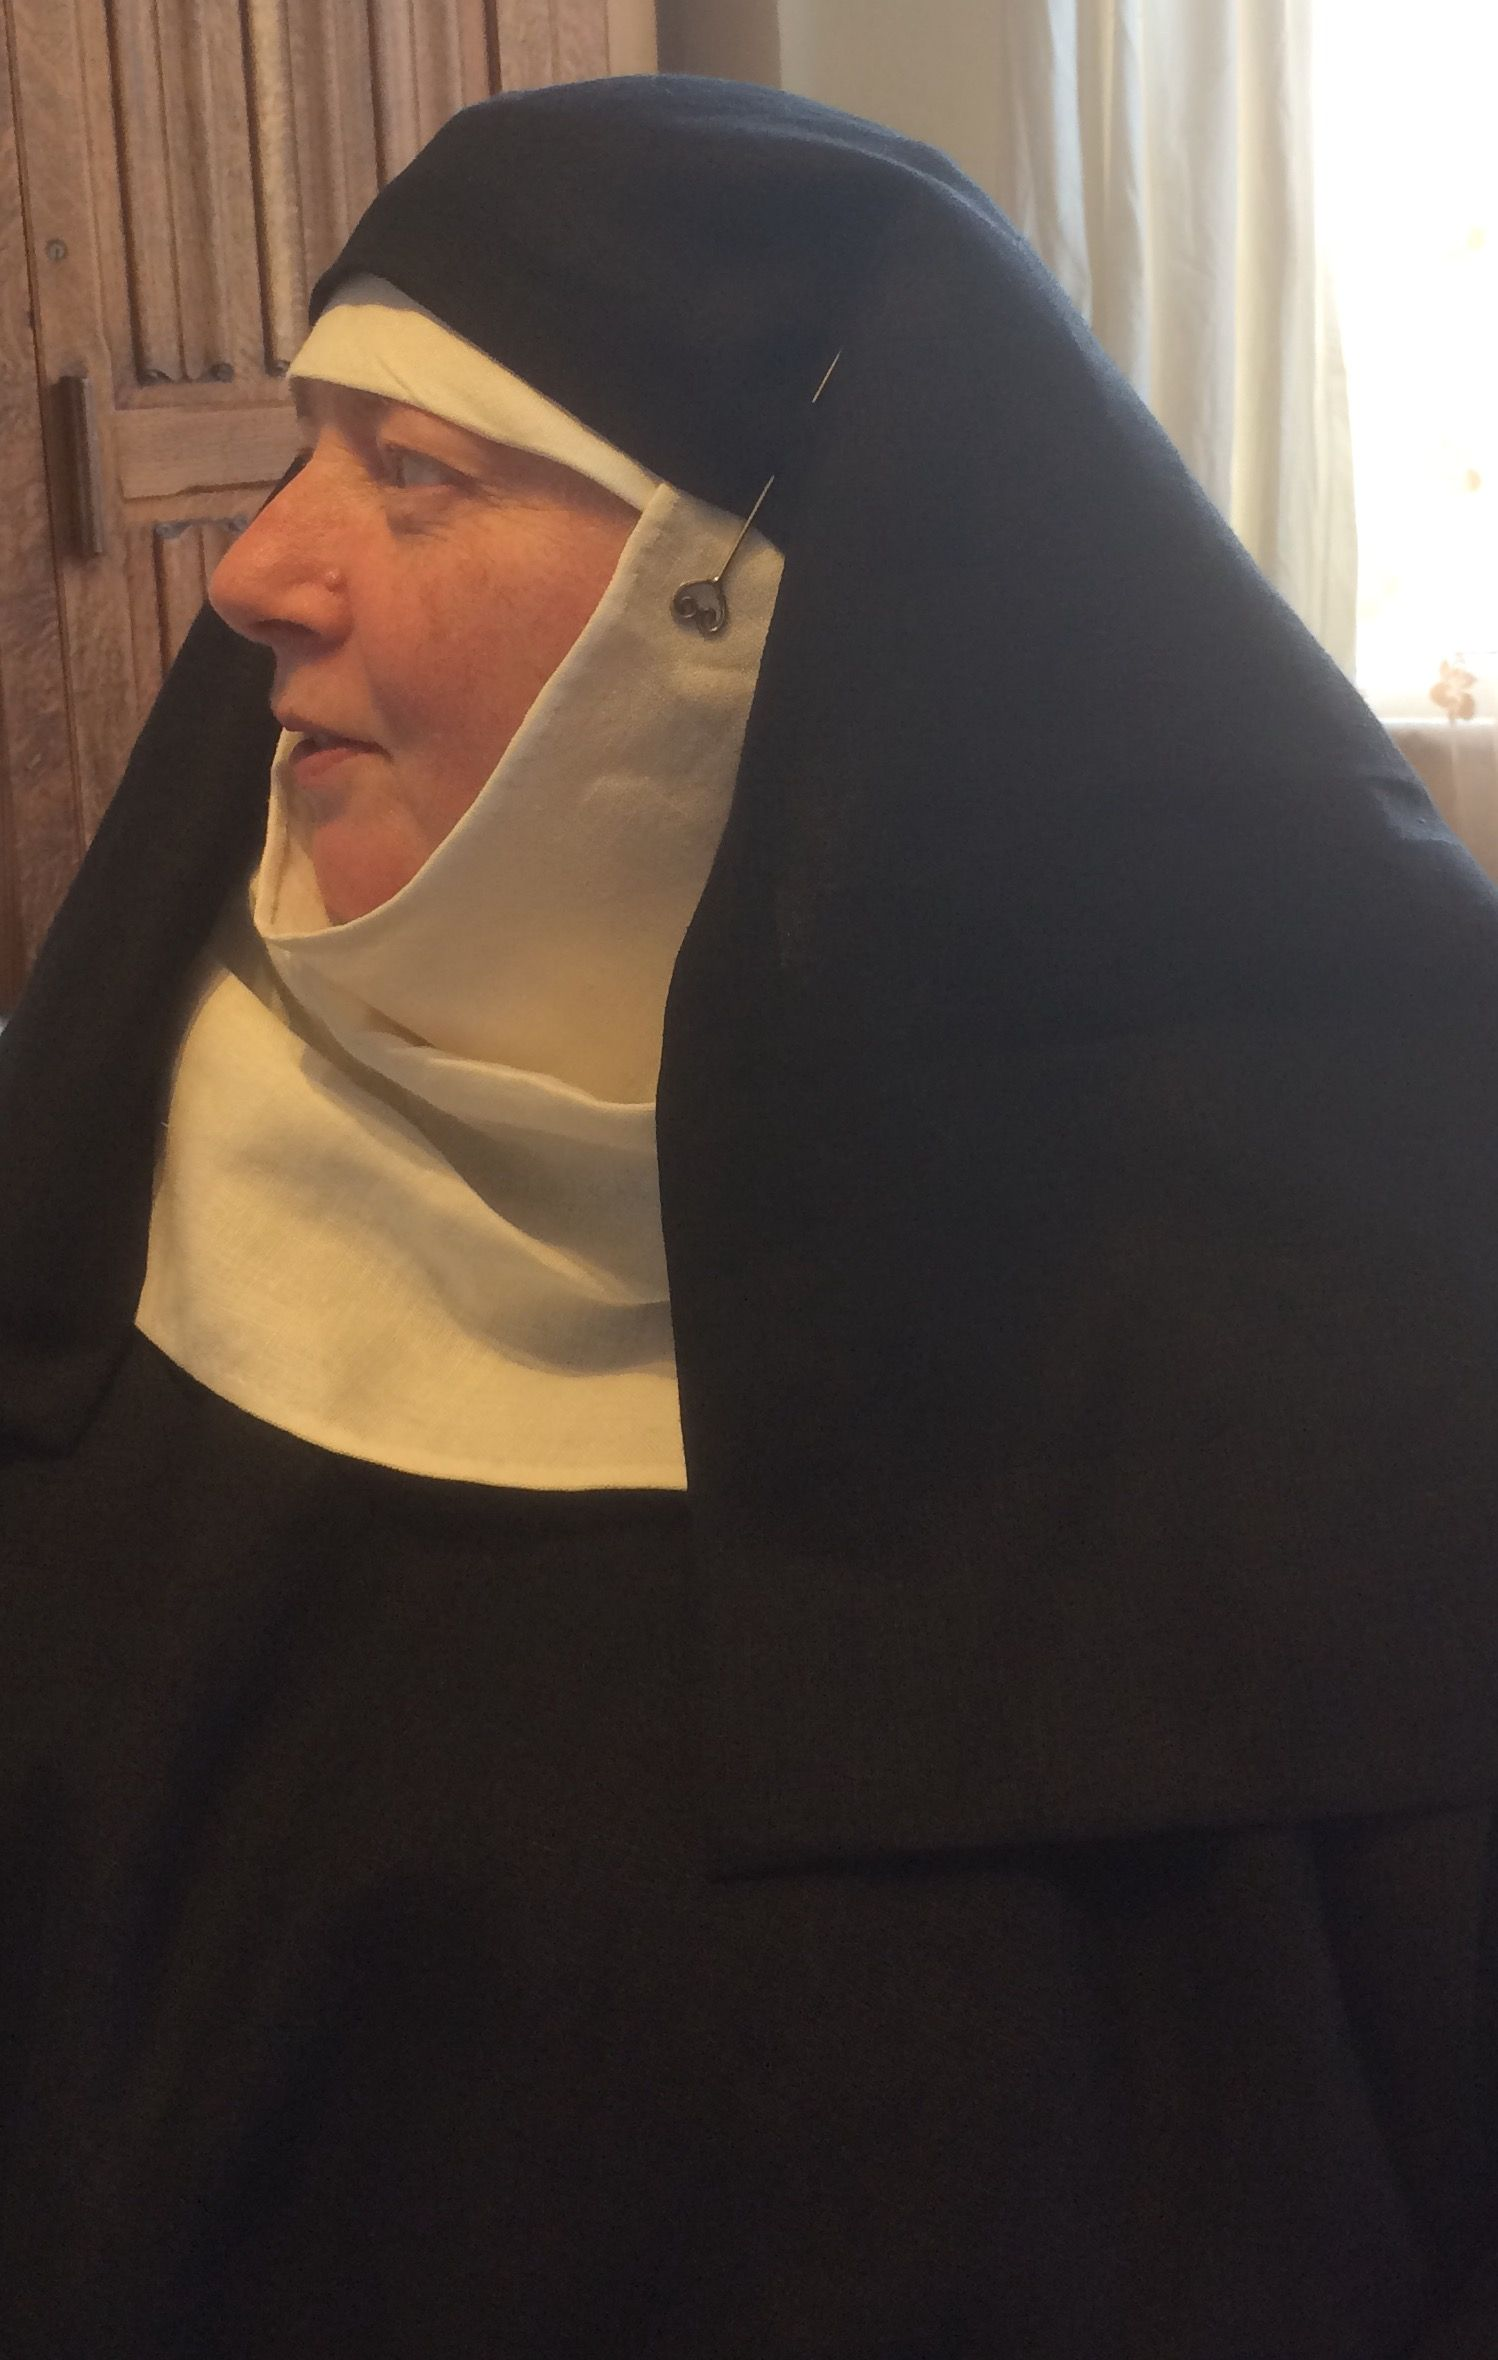 Where can I buy an original nun wimple?